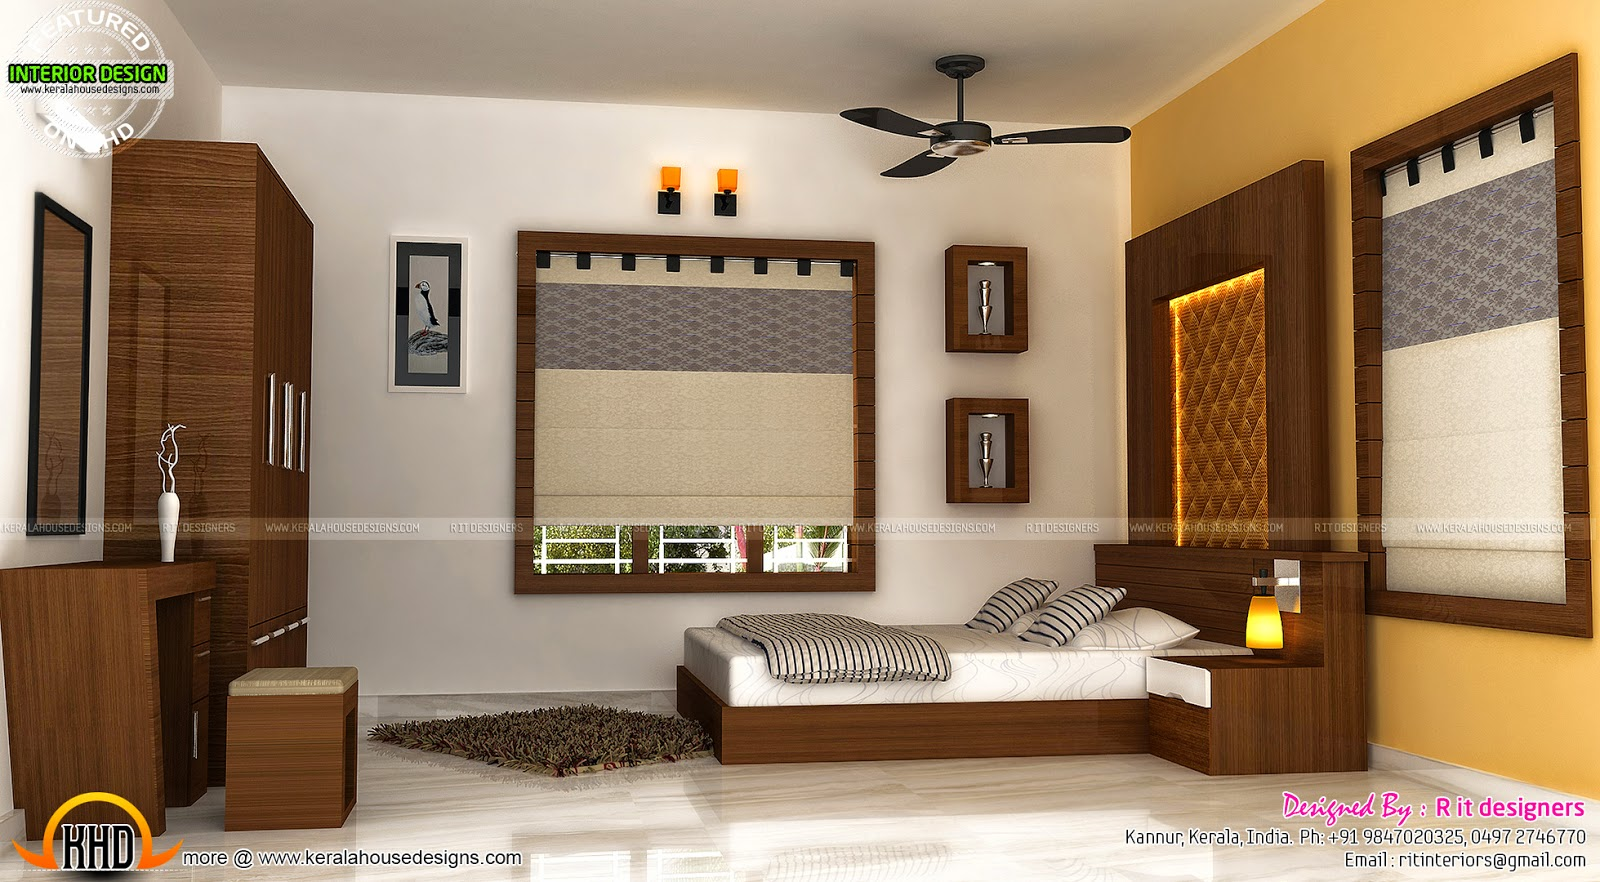 Staircase bedroom dining interiors kerala home design and floor plans Interior designing of your home